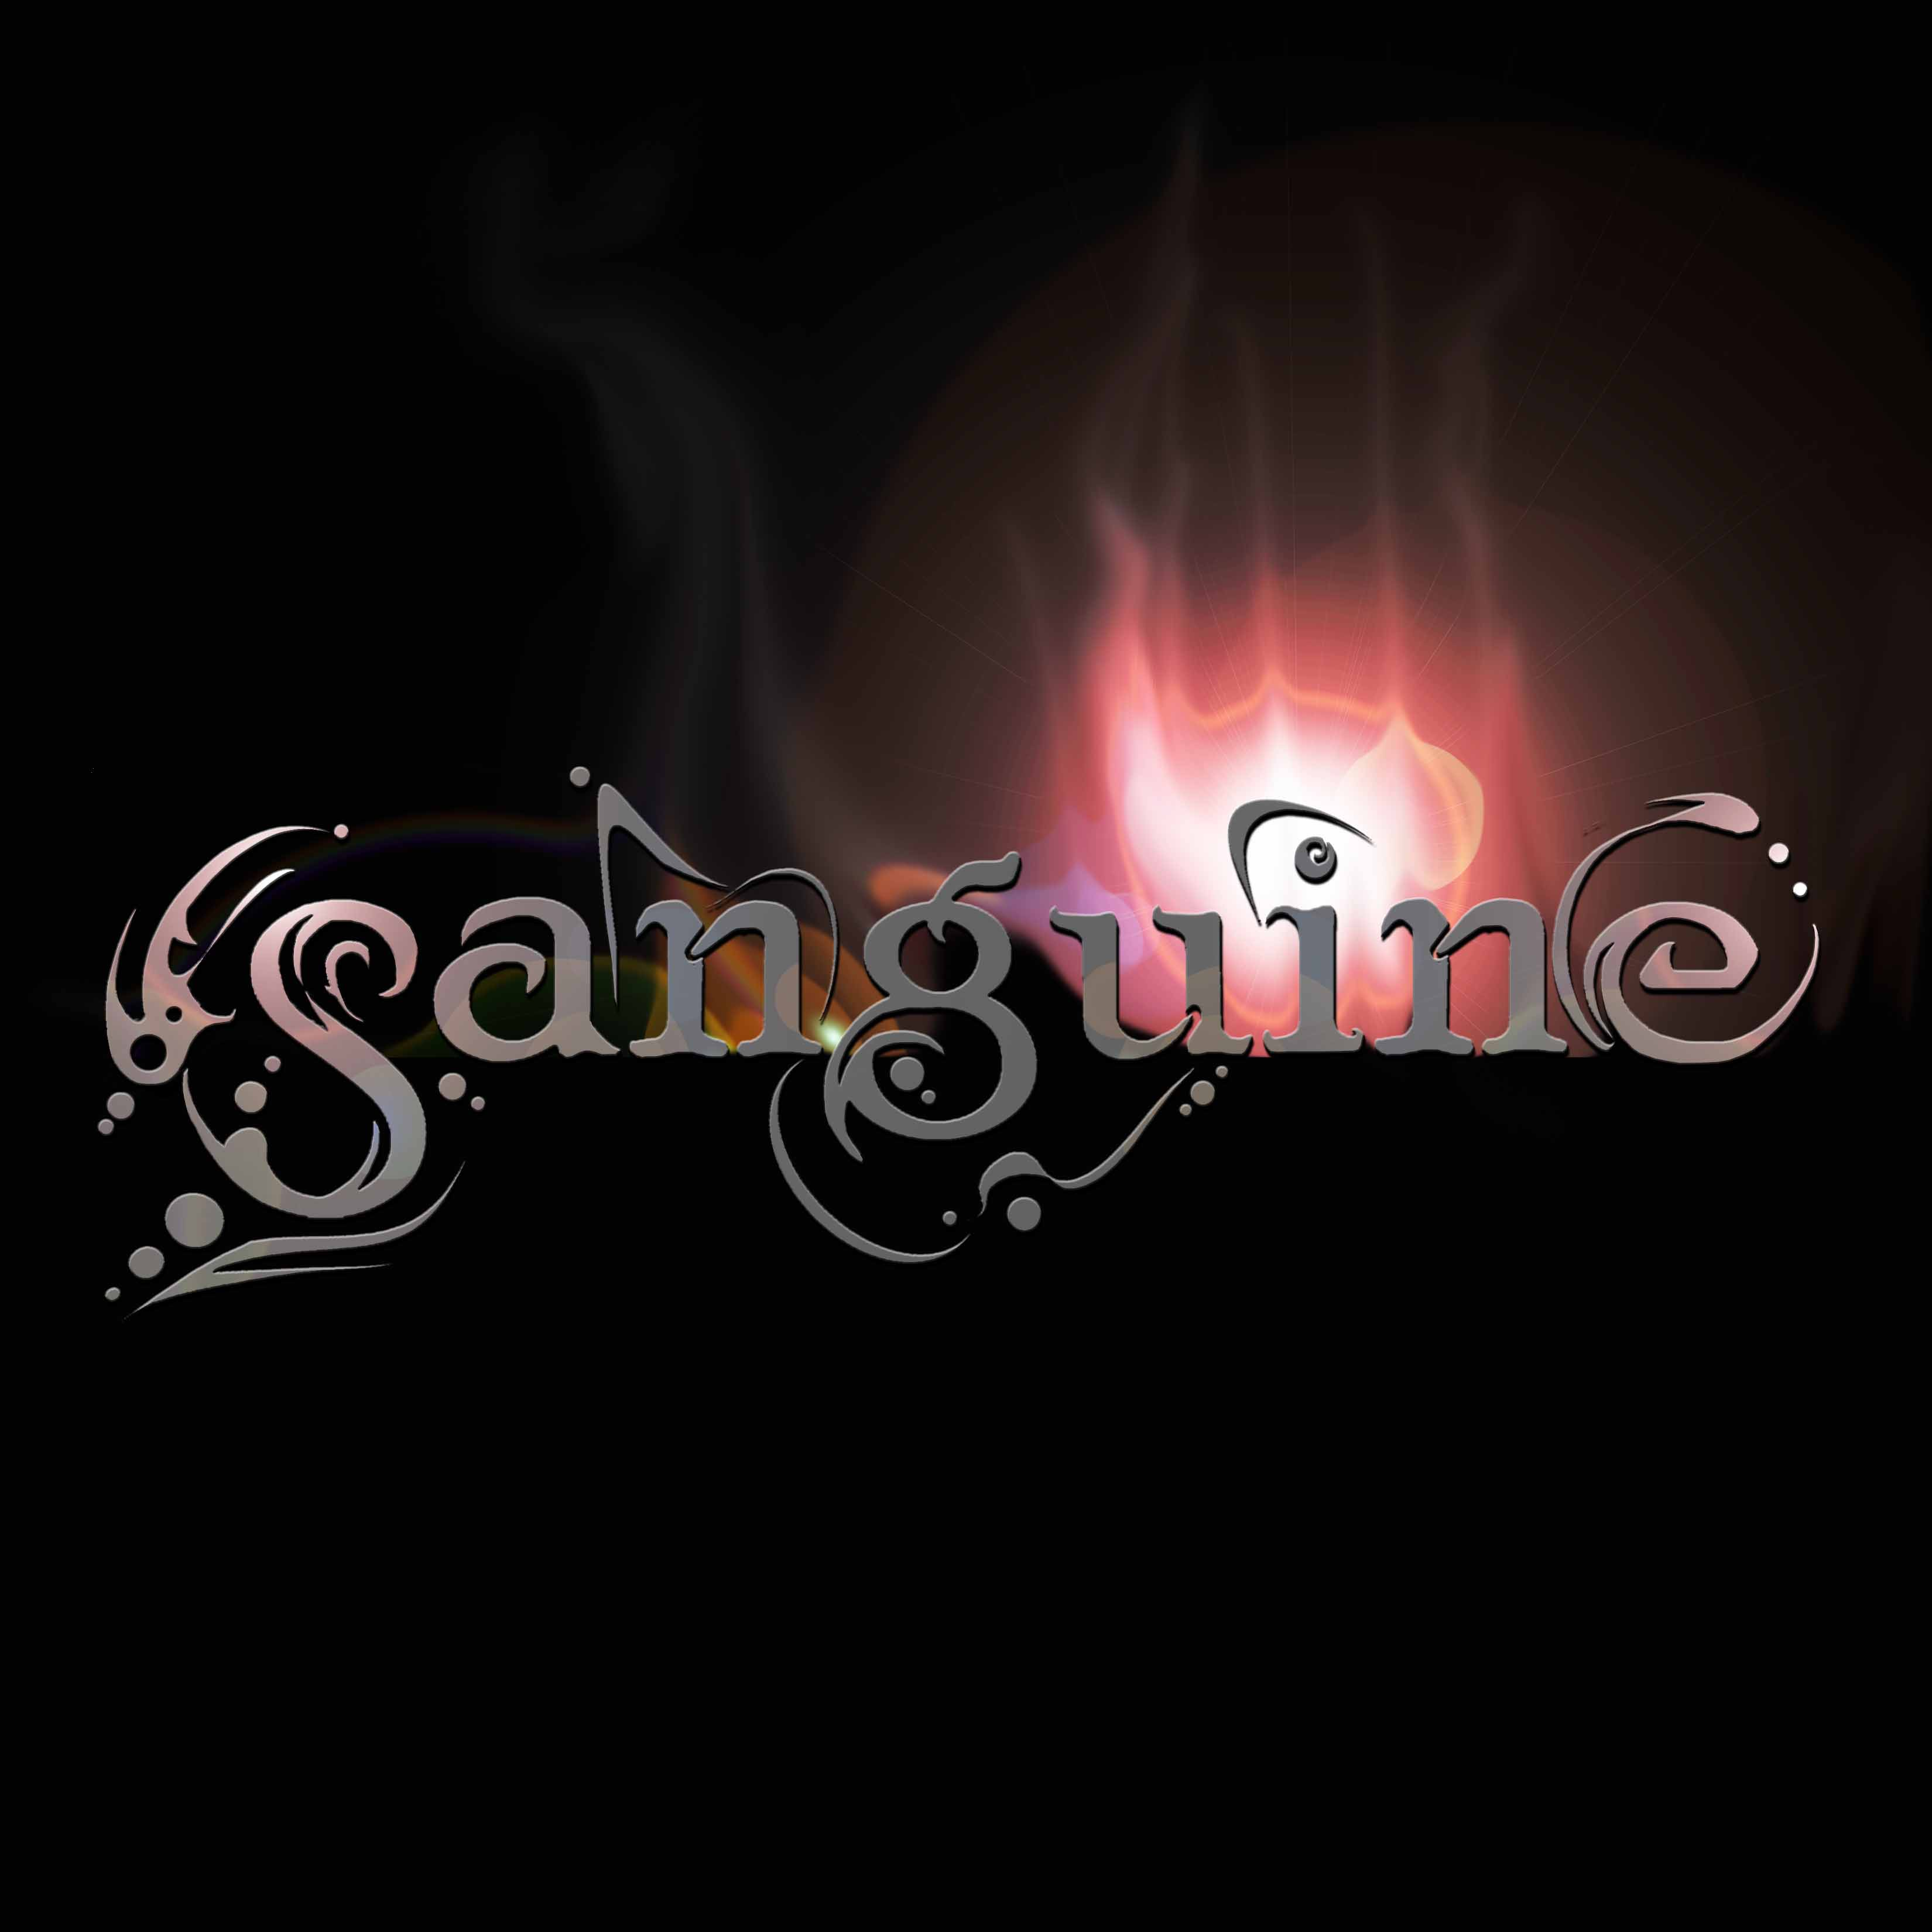 Sanguine album cover